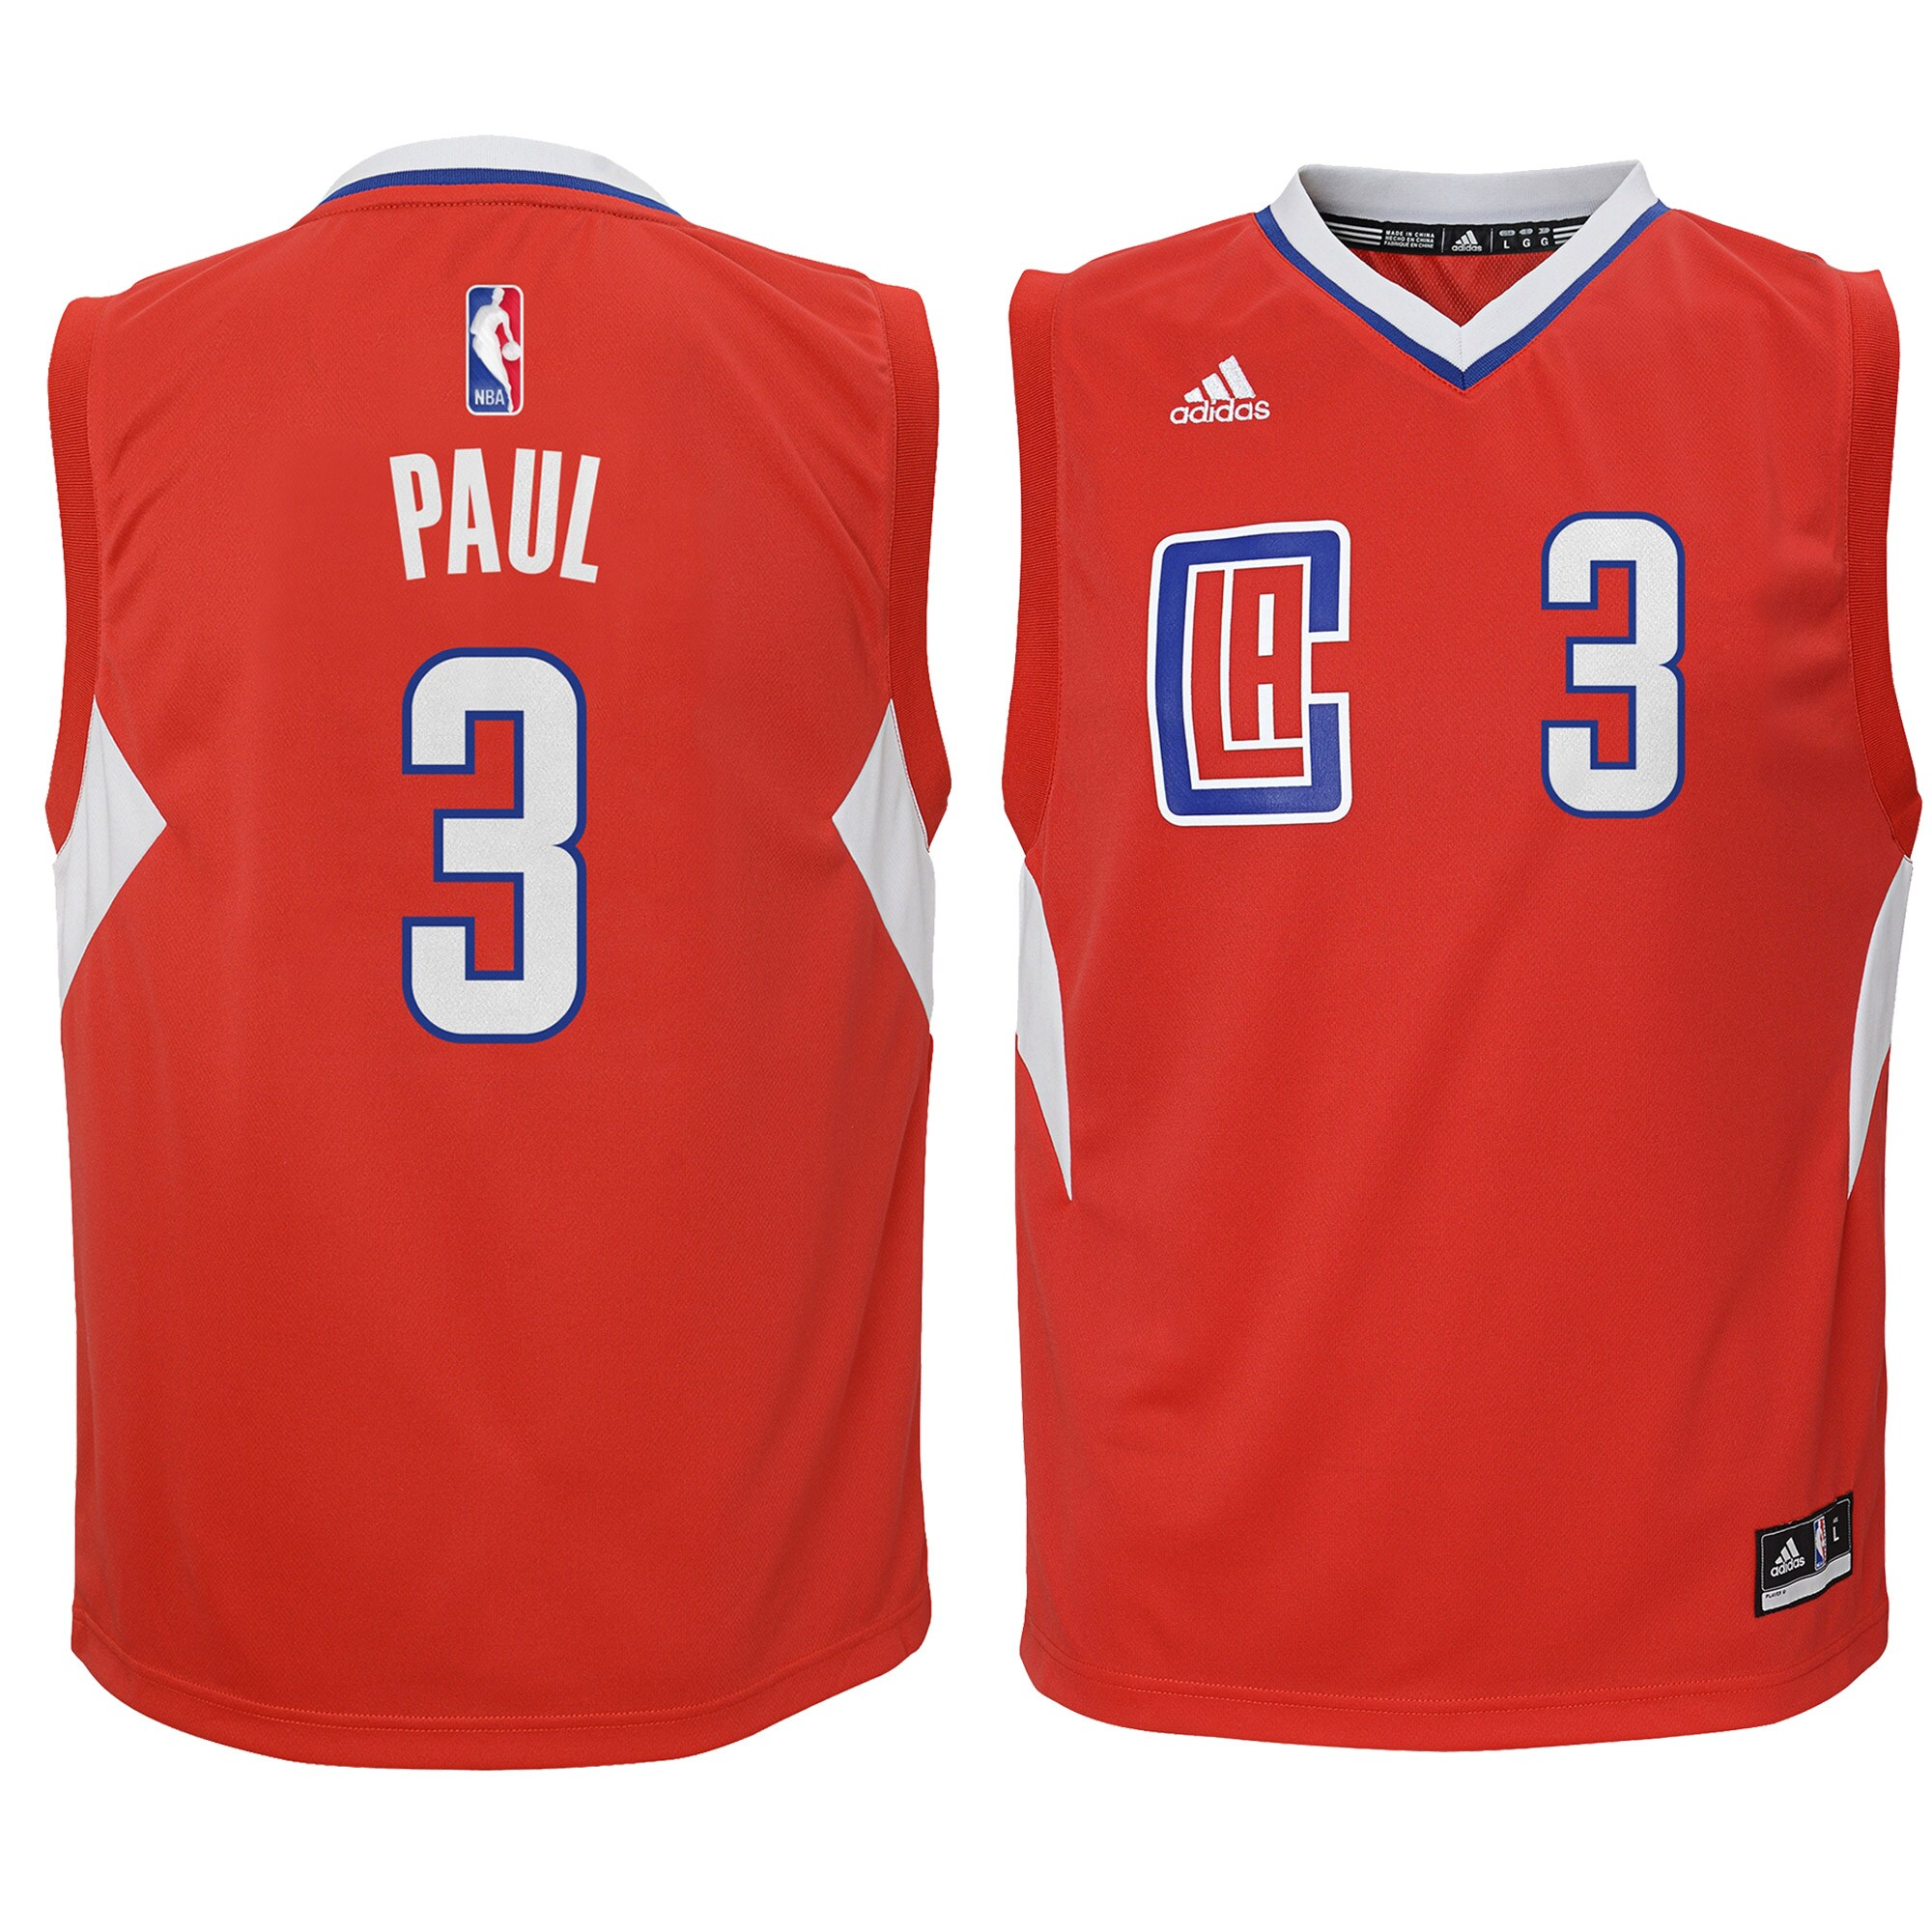 Chris Paul LA Clippers adidas Youth Replica Jersey - Red